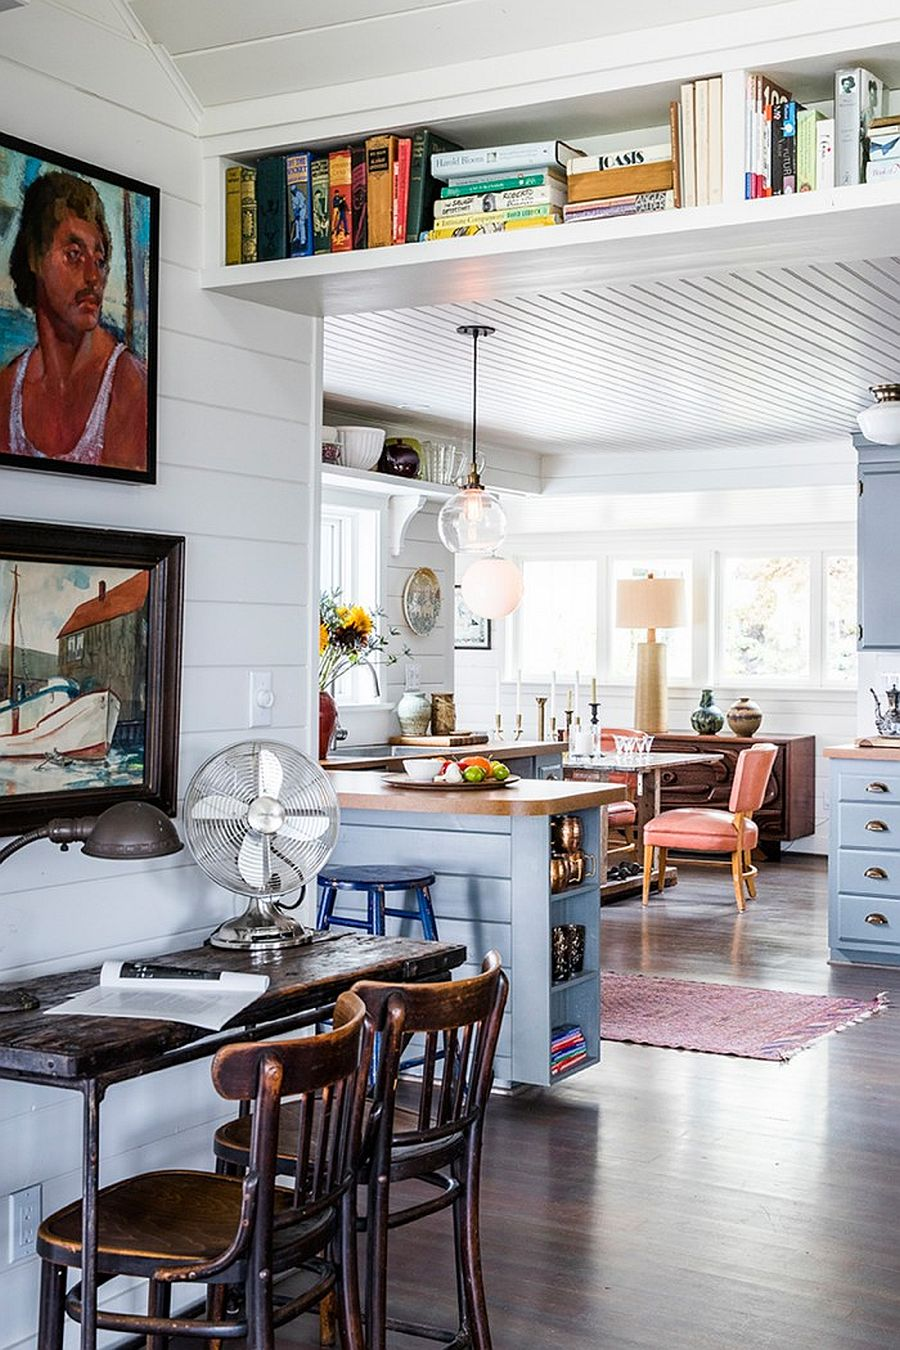 Kitchen, home workspace and living area of the home on Vashon Island